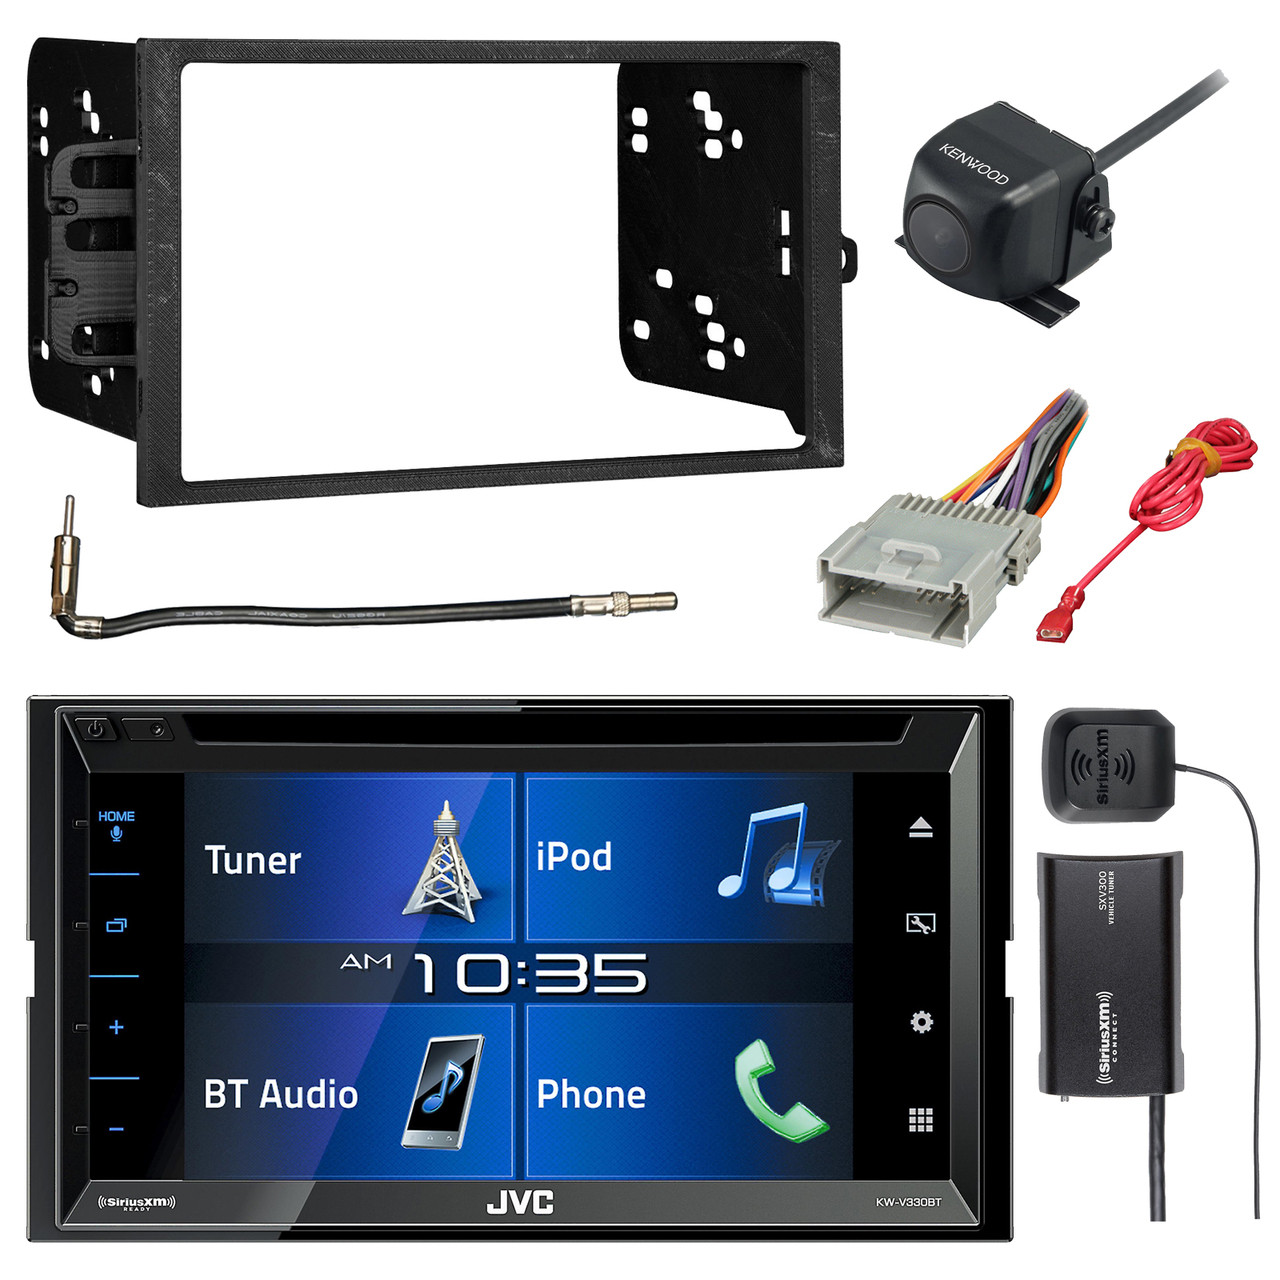 jvc dvd car stereo wiring ccfd14ni bibliofem nl \u2022 JVC KD R530 Wiring-Diagram jvc kw v330bt 6 8 double din bluetooth dvd cd am fm stereo rh roadentertainment com sony car stereo wiring jvc car stereo problem